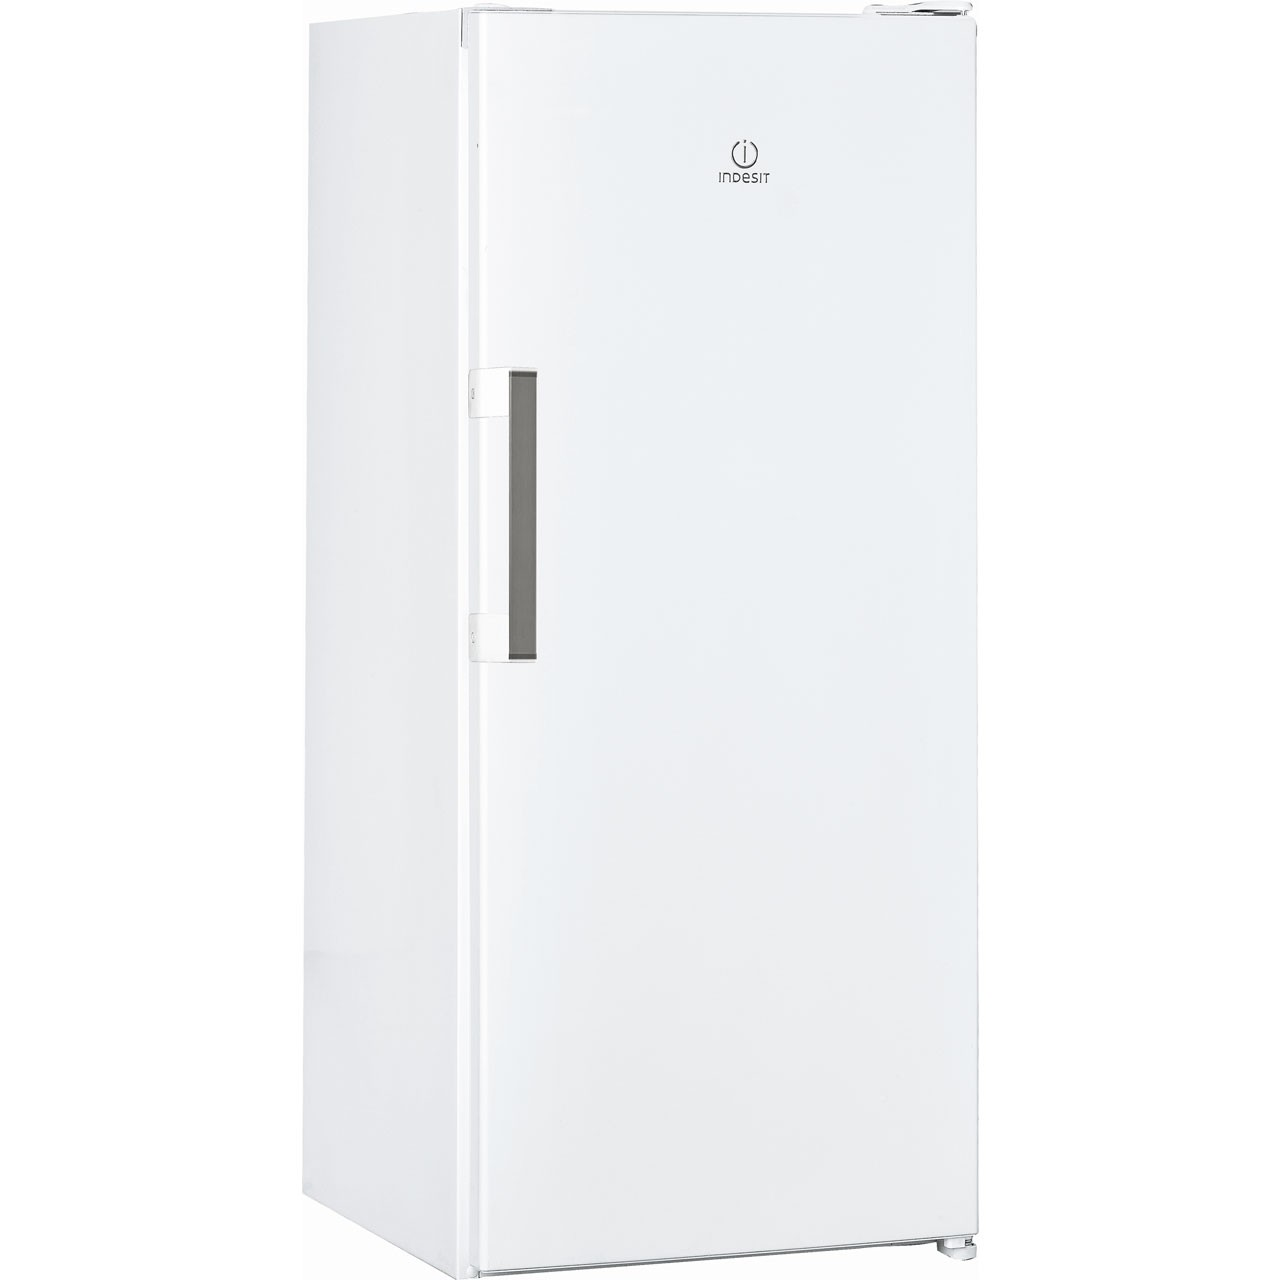 Indesit SI41WUK Fridge